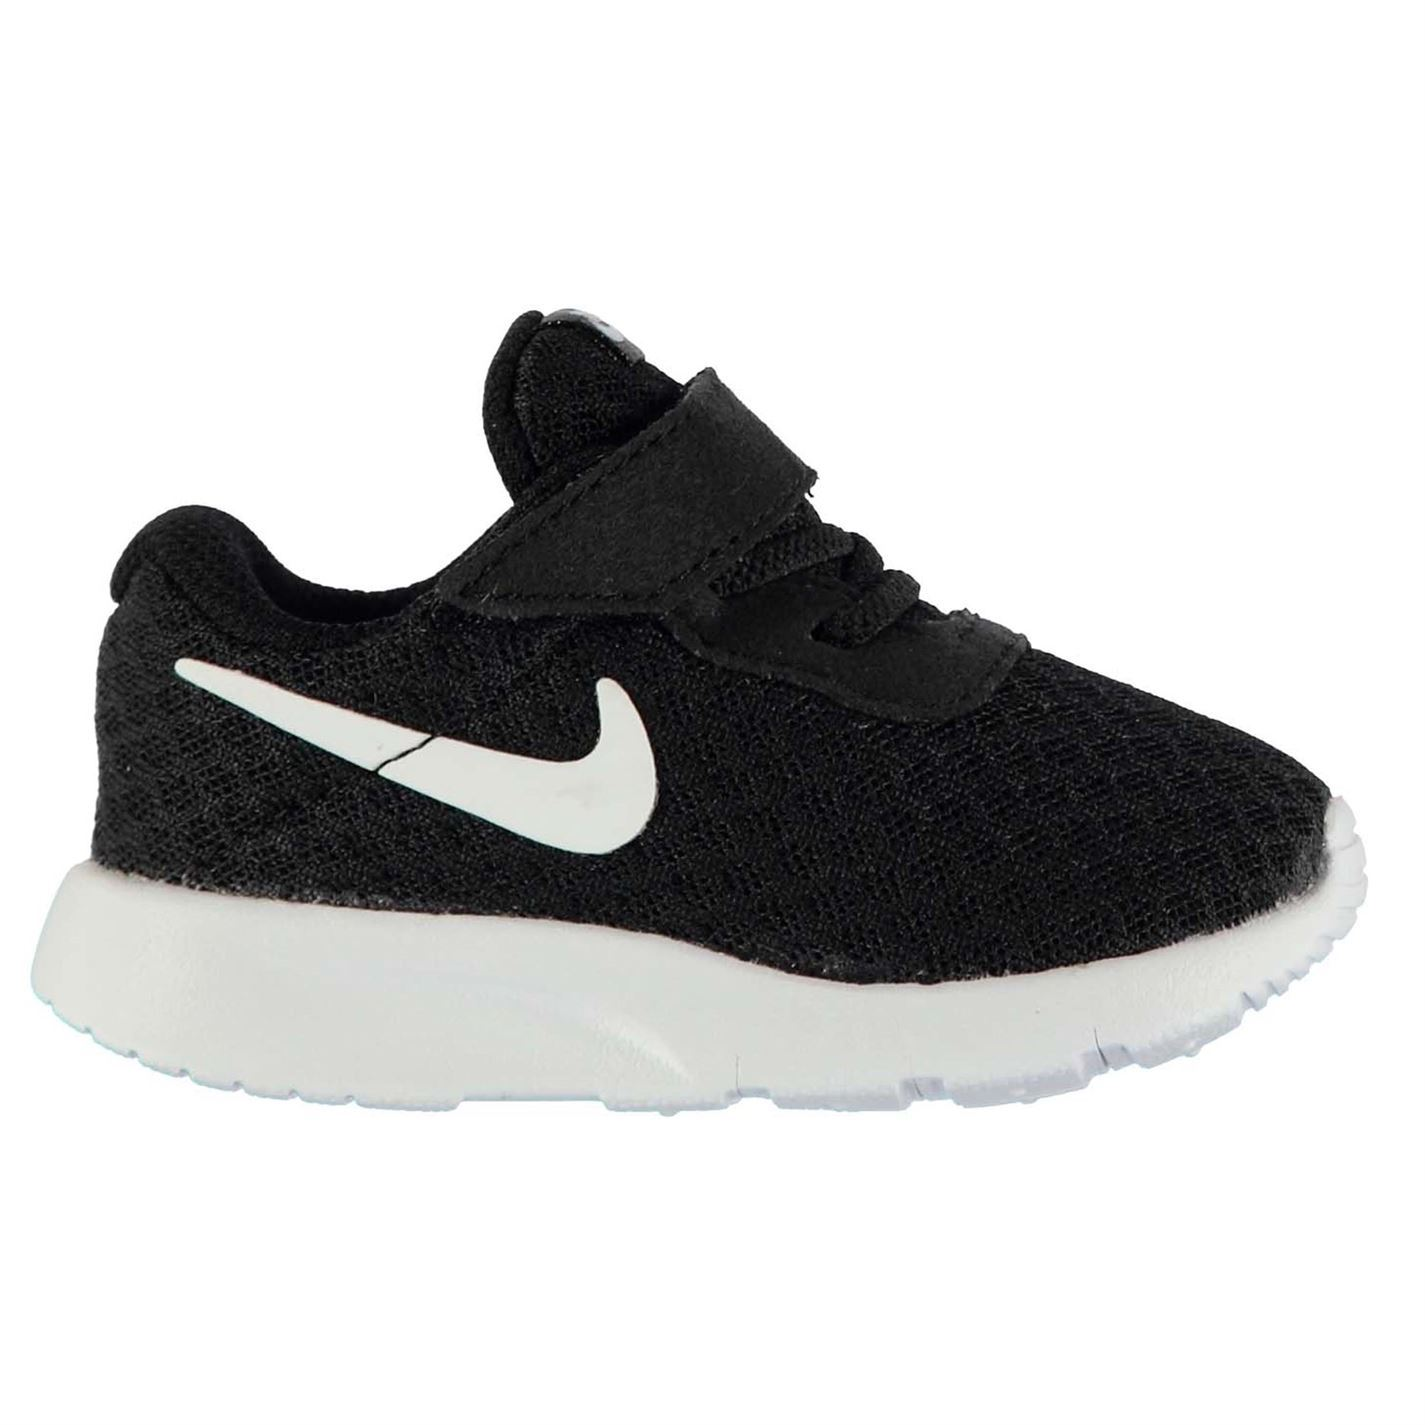 Nike Tanjun Trainer Infant Boys Shoes Footwear